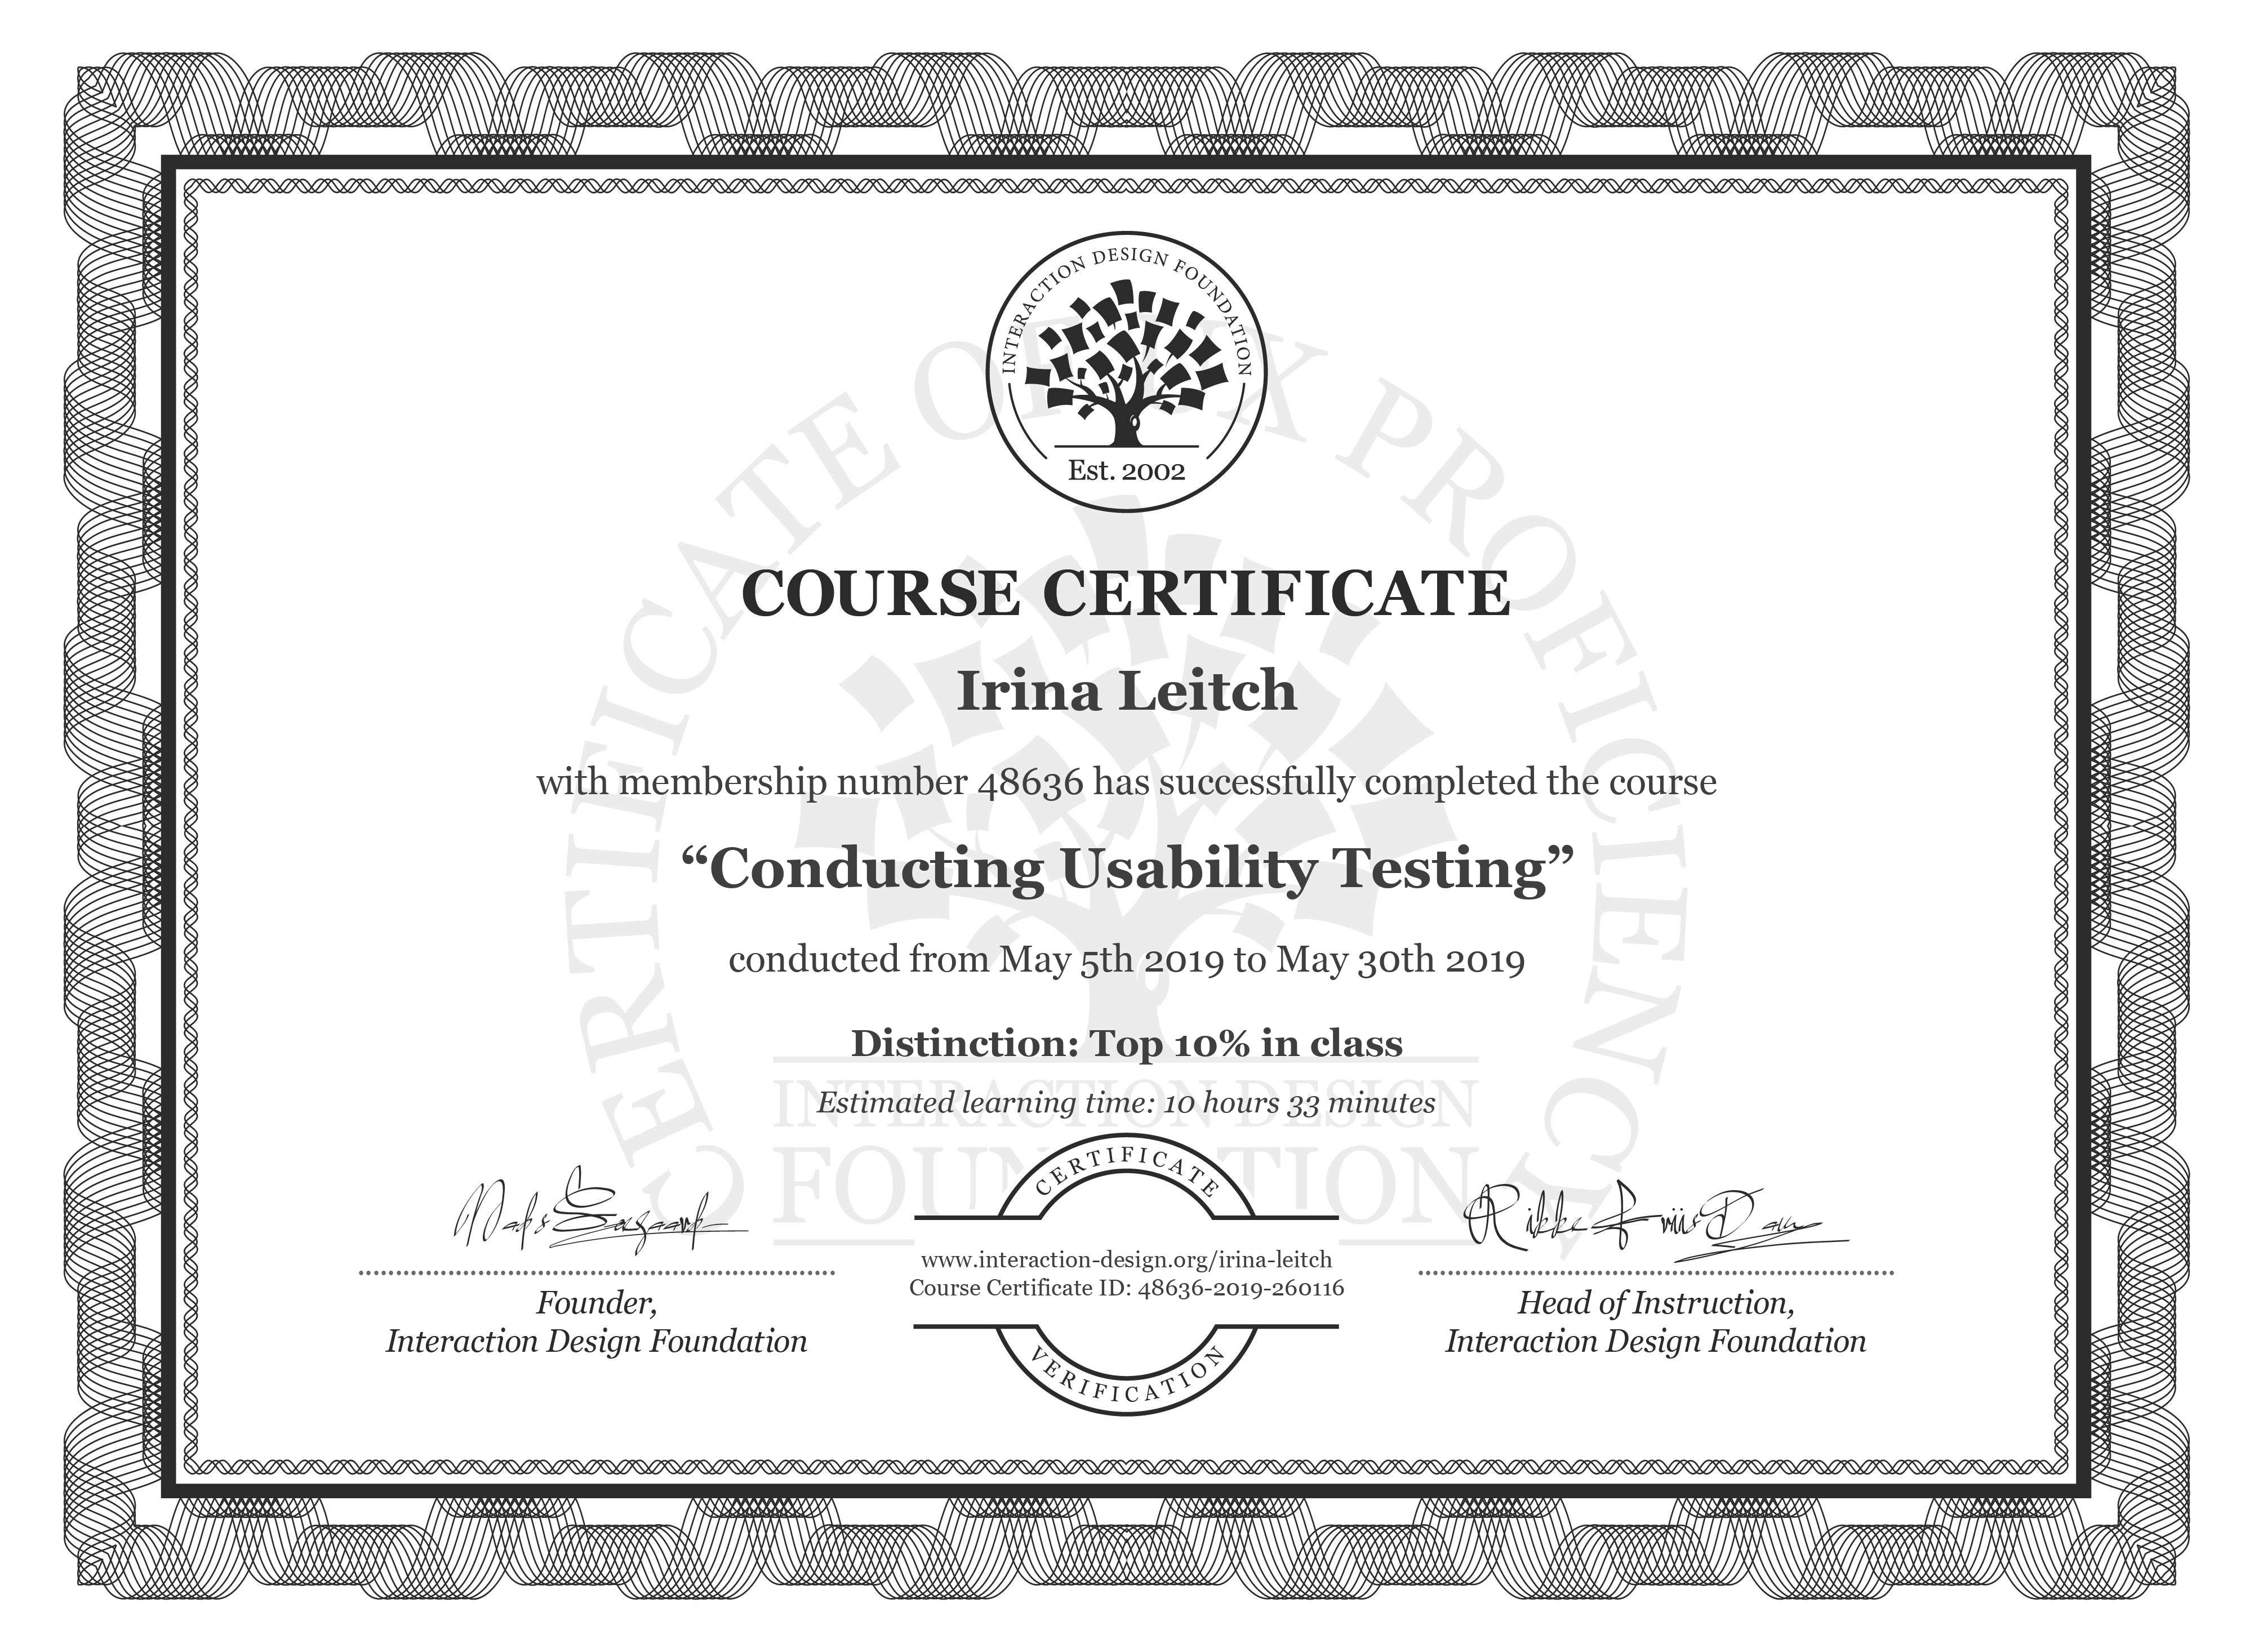 Irina Leitch's Course Certificate: Conducting Usability Testing